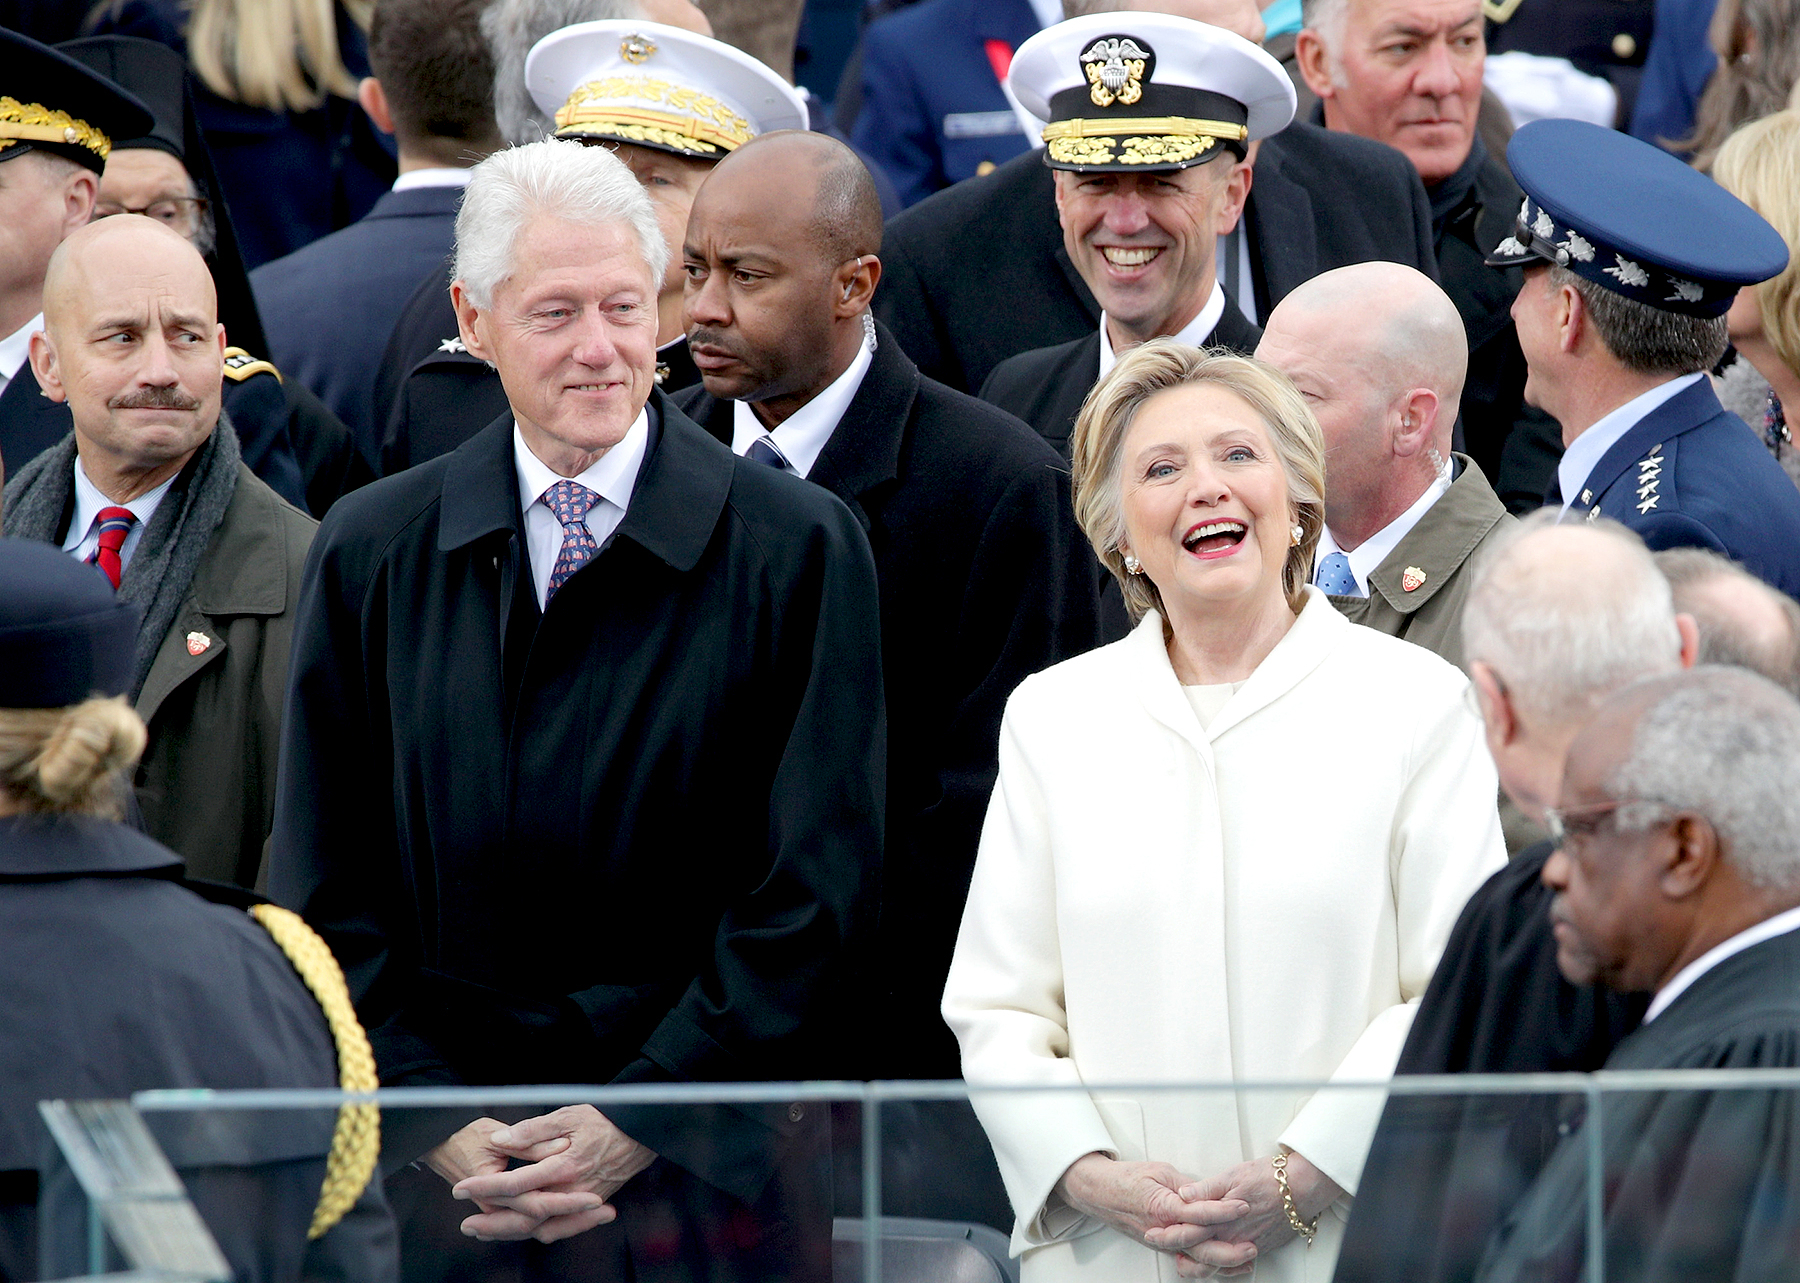 Former President Bill Clinton and former Democratic presidential nominee Hillary Clinton arrive on the West Front of the U.S. Capitol on January 20, 2017 in Washington, DC.